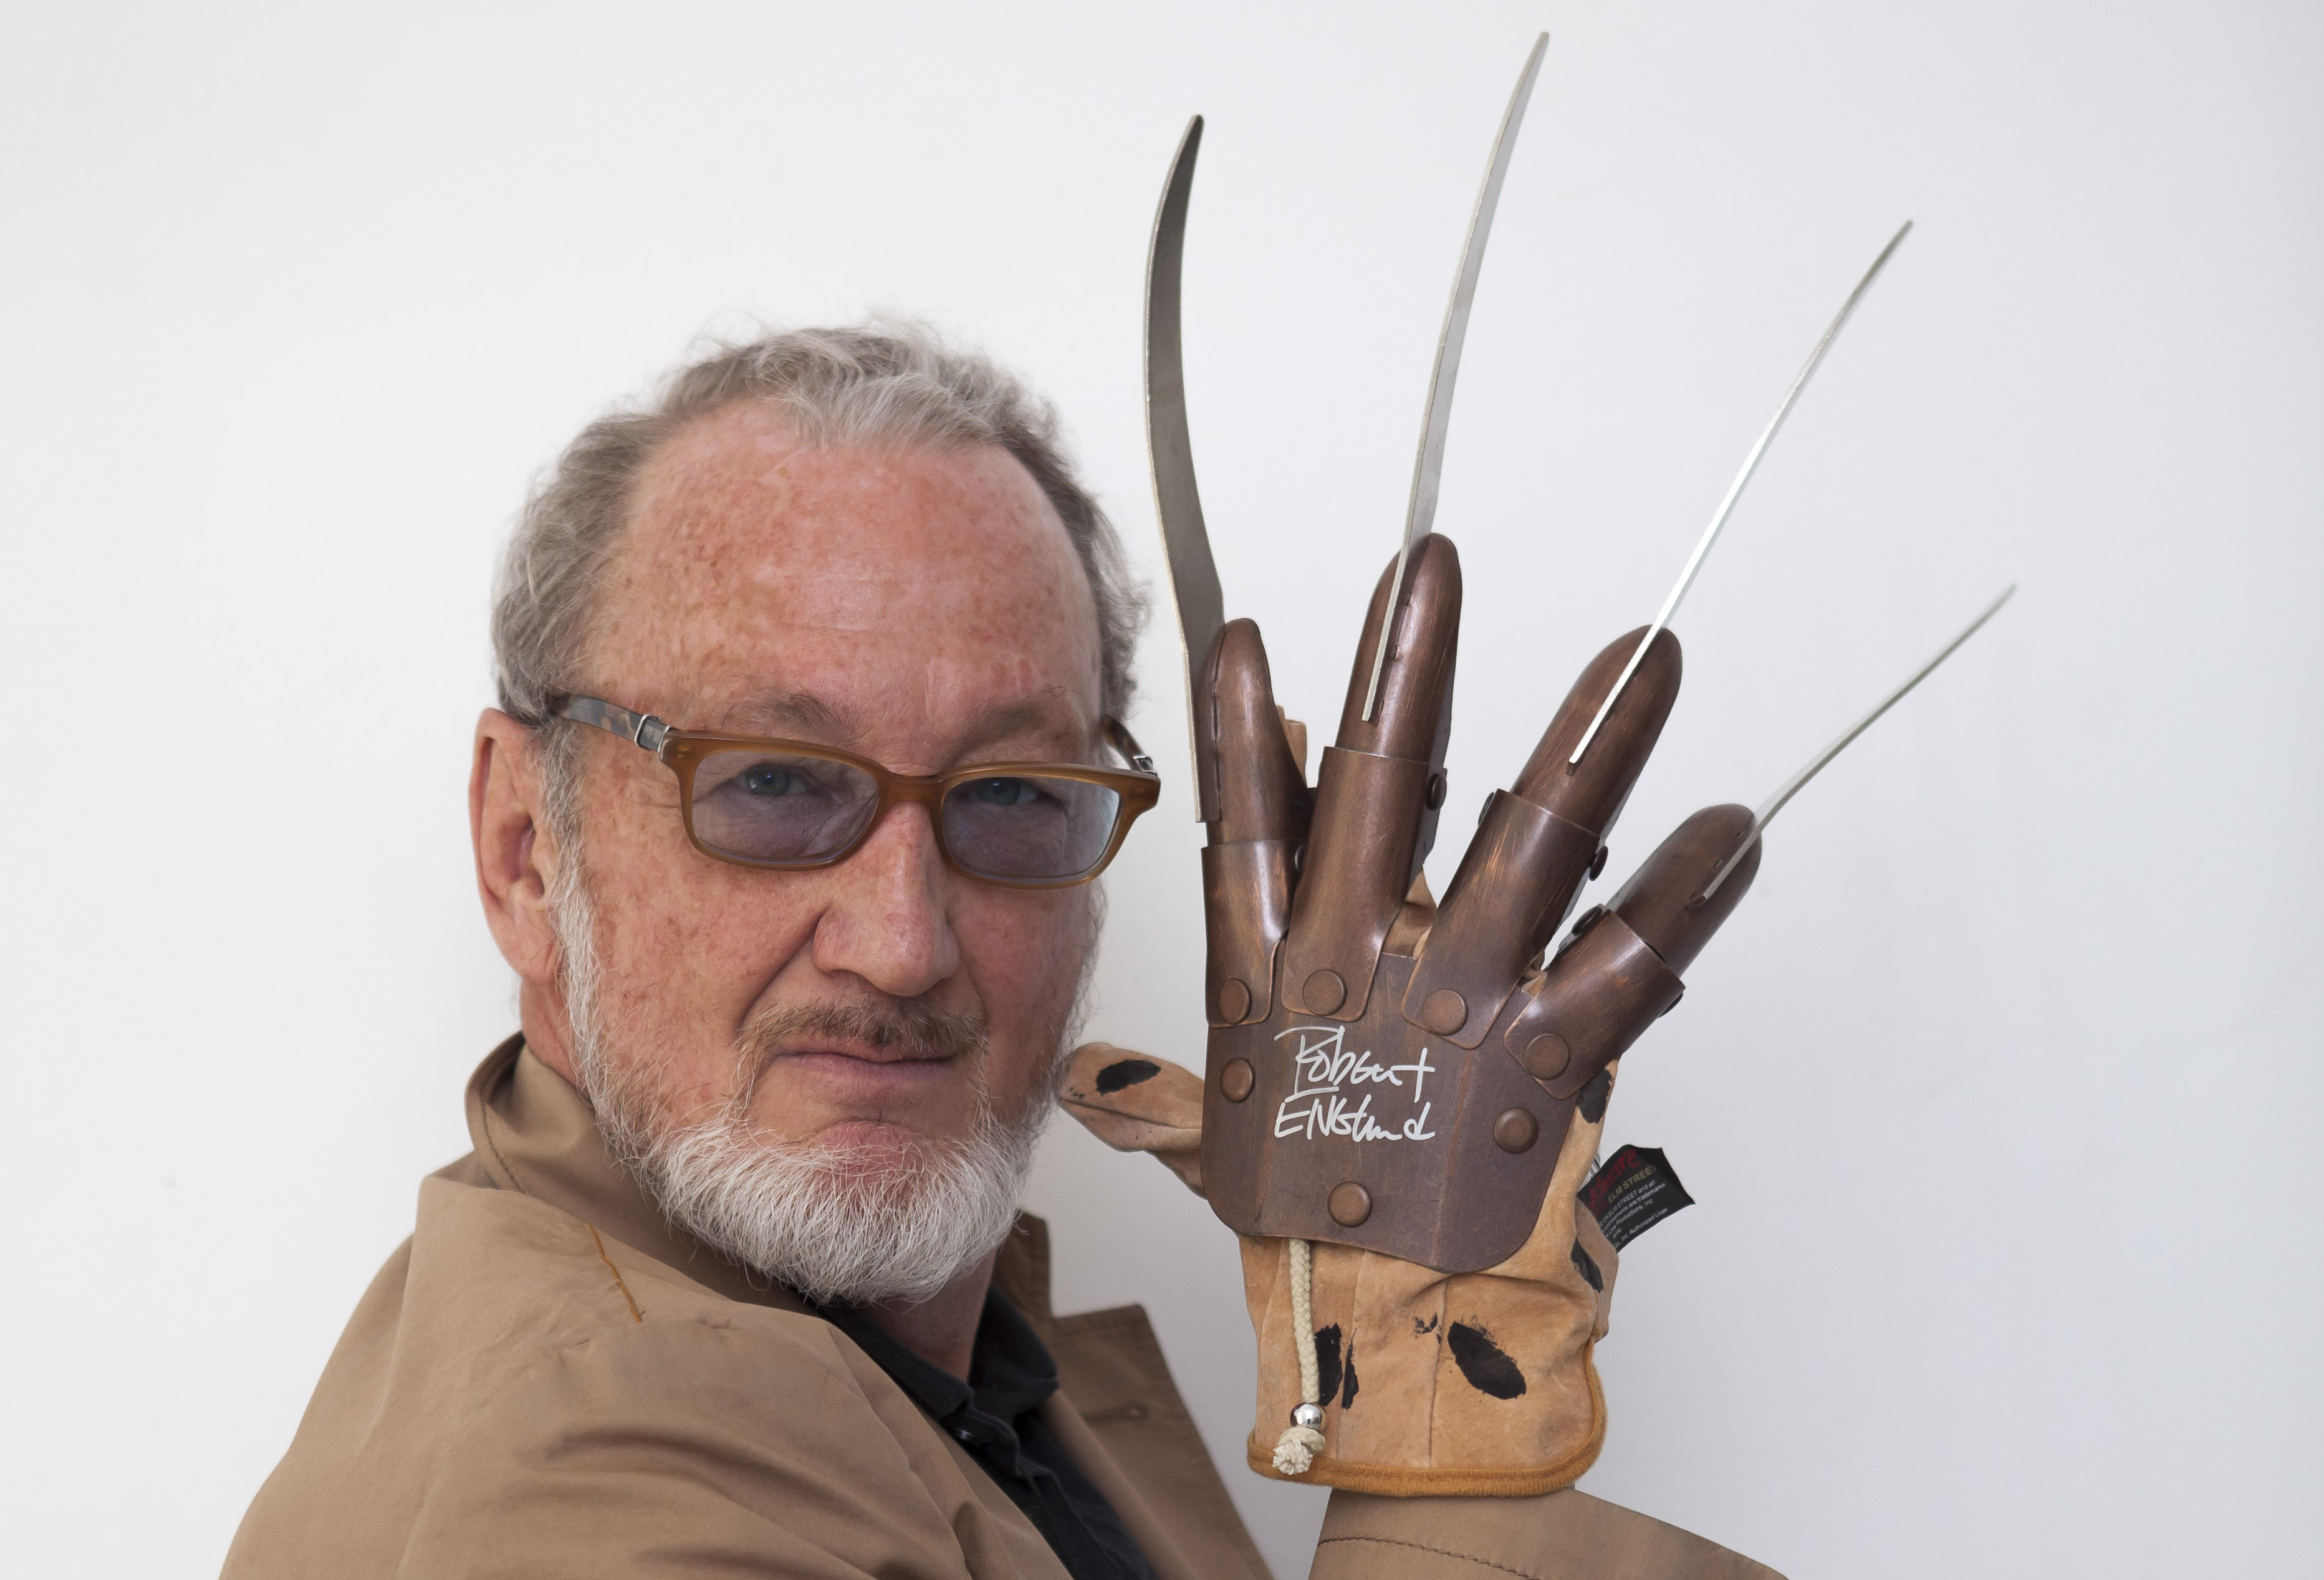 Robert Englund Wants a Part in a New Nightmare on Elm Street | IndieWire